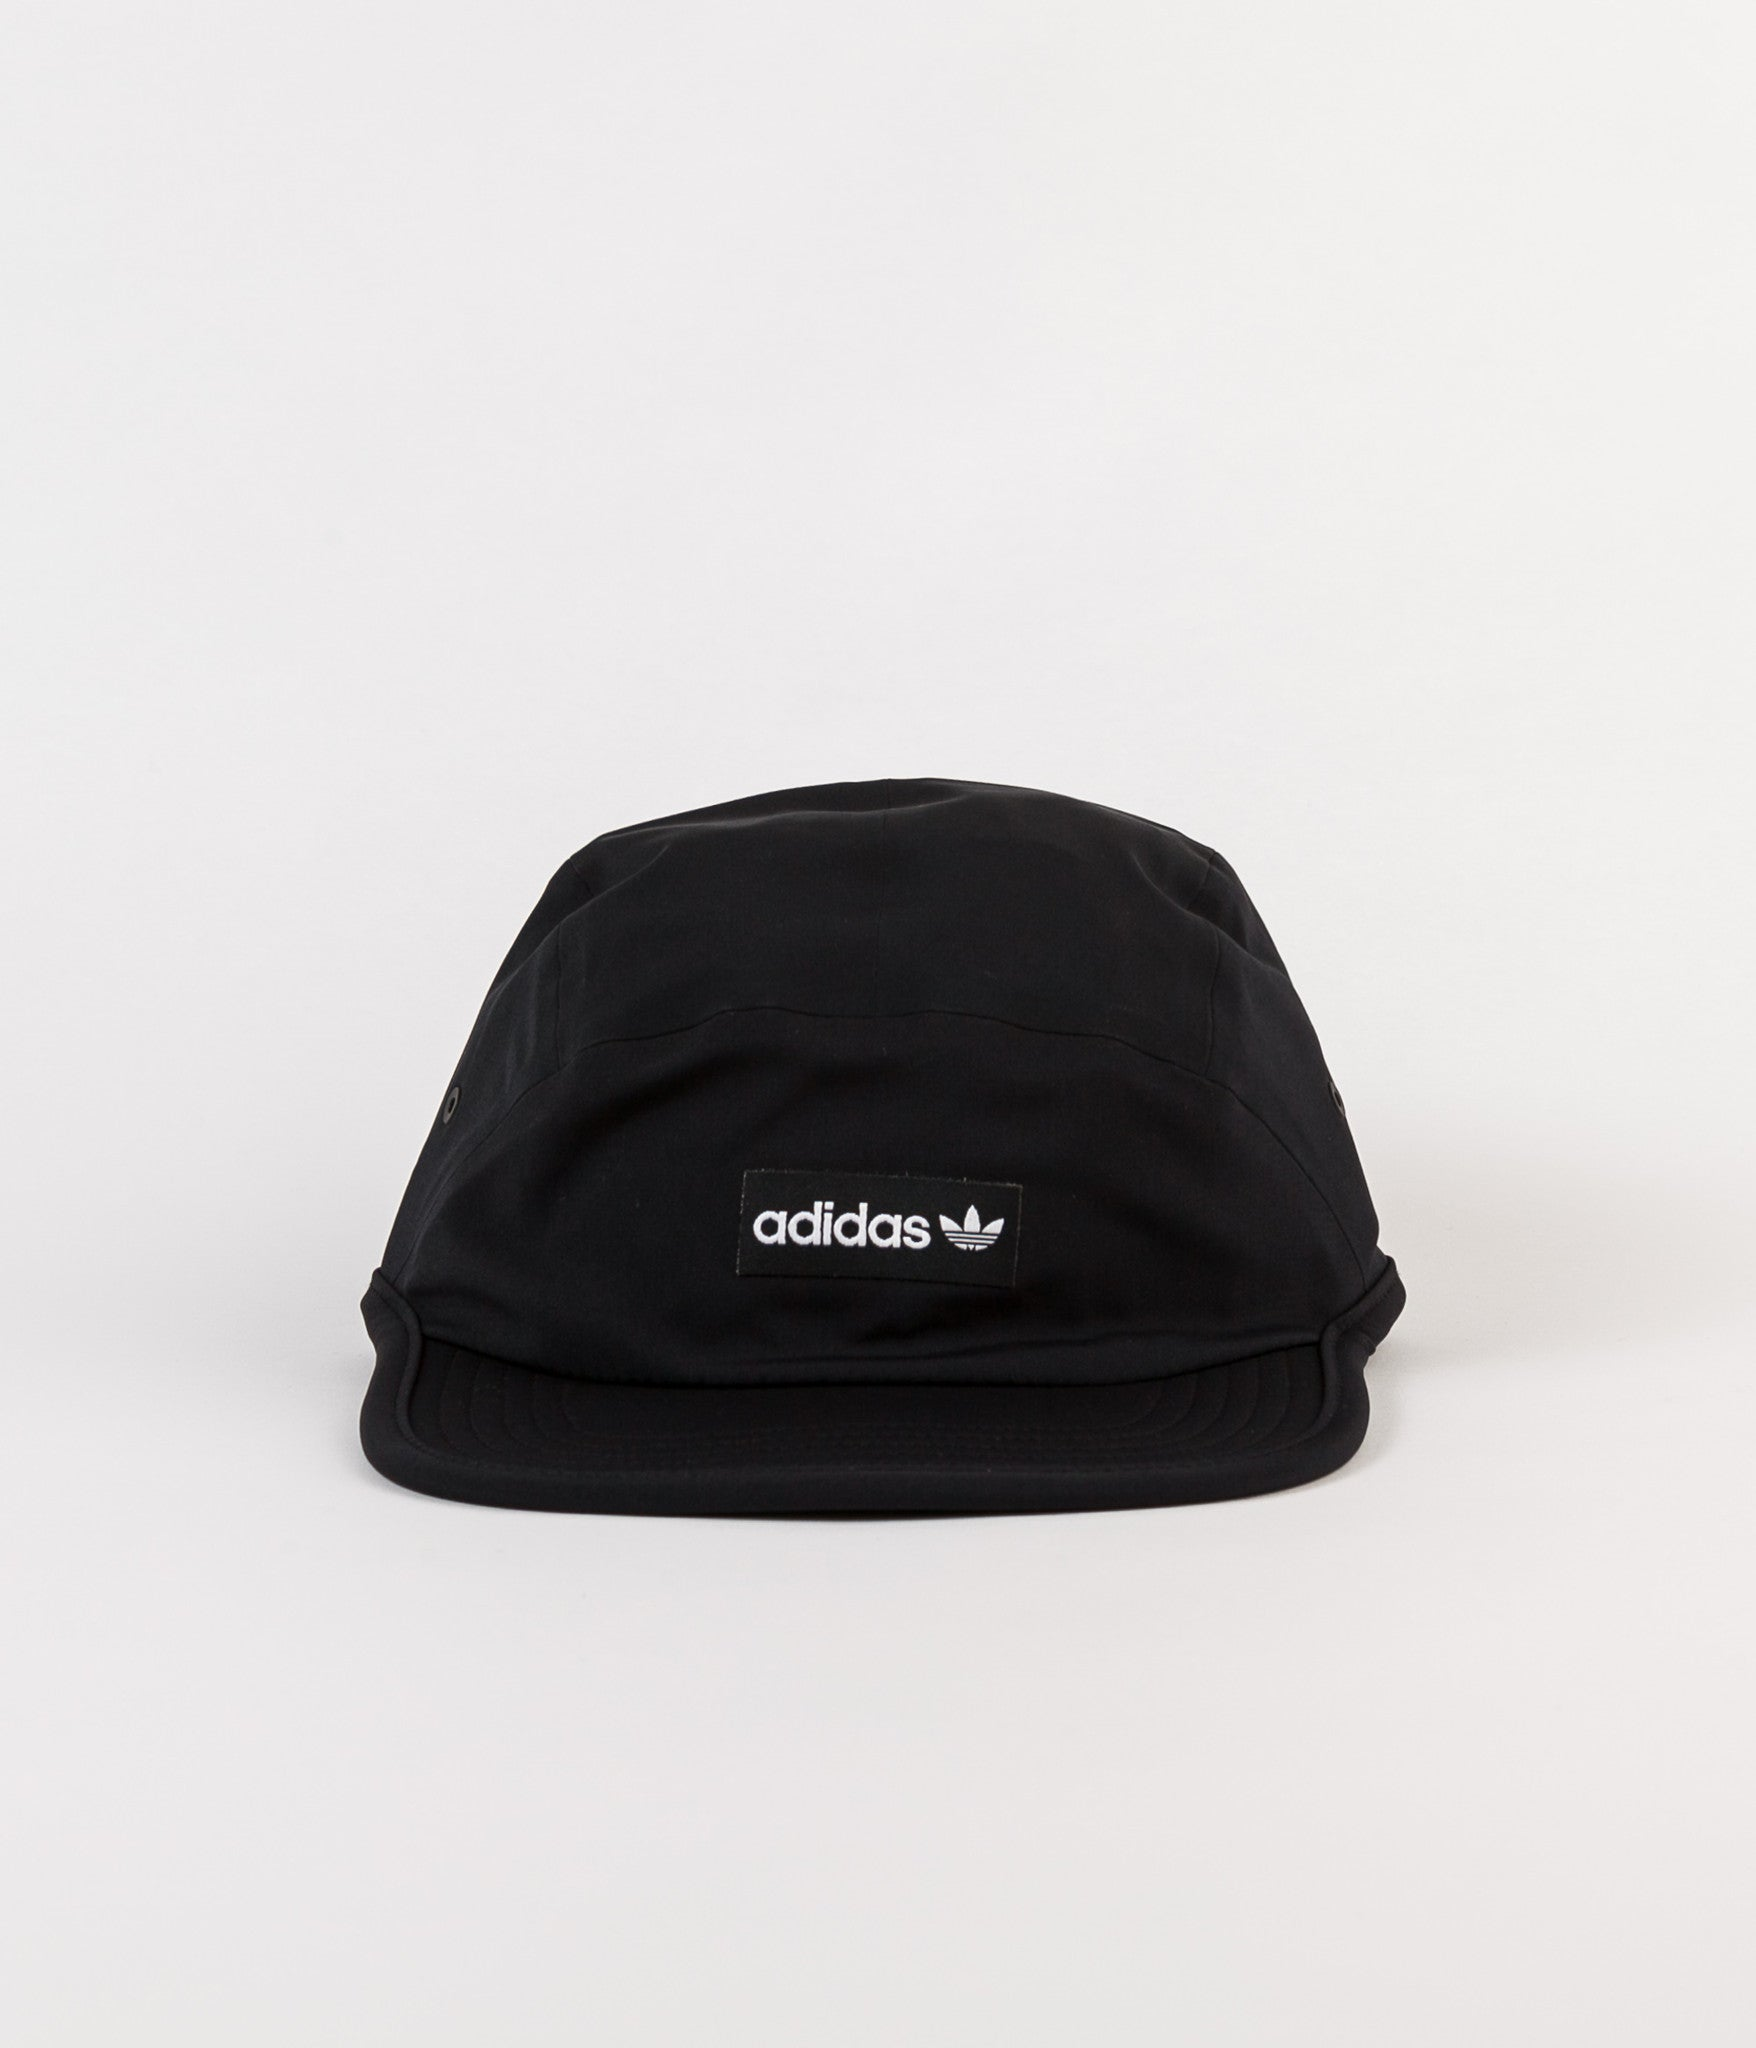 Adidas EQT Tech Cap - Black